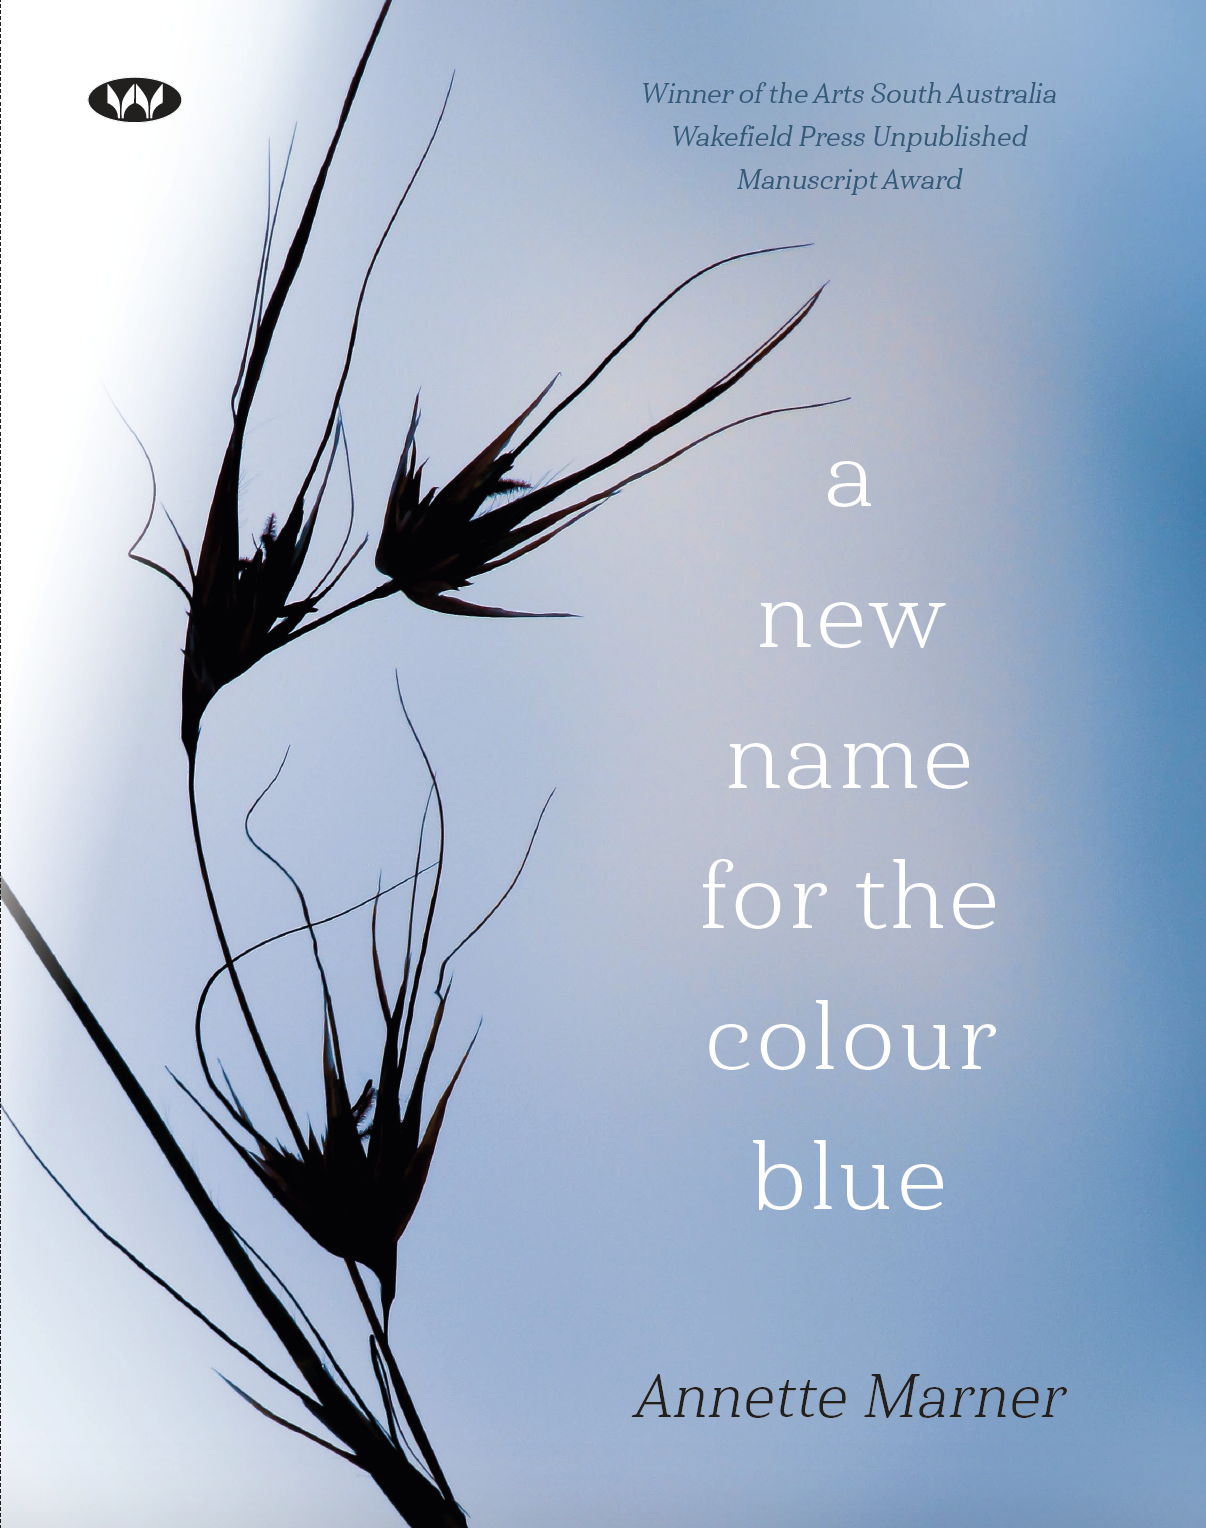 A new name for the colour blue